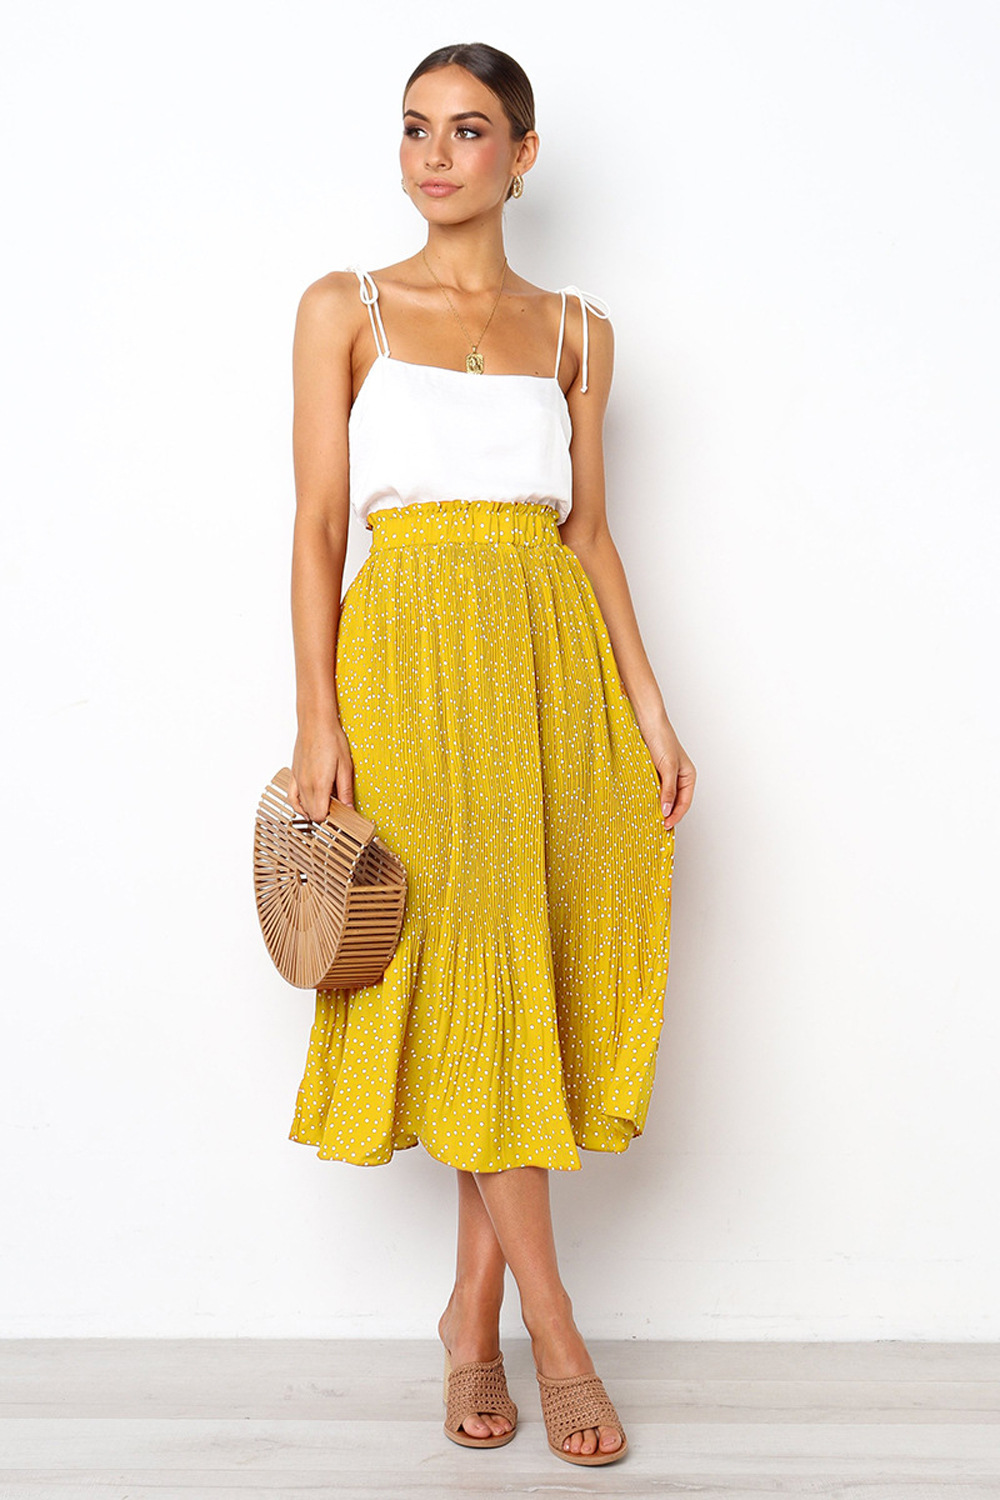 H06388e70f2ad4686a1e5b4c31c72c746B - Summer Casual Chiffon Print Pockets High Waist Pleated Maxi Skirt Womens Long Skirts For Women